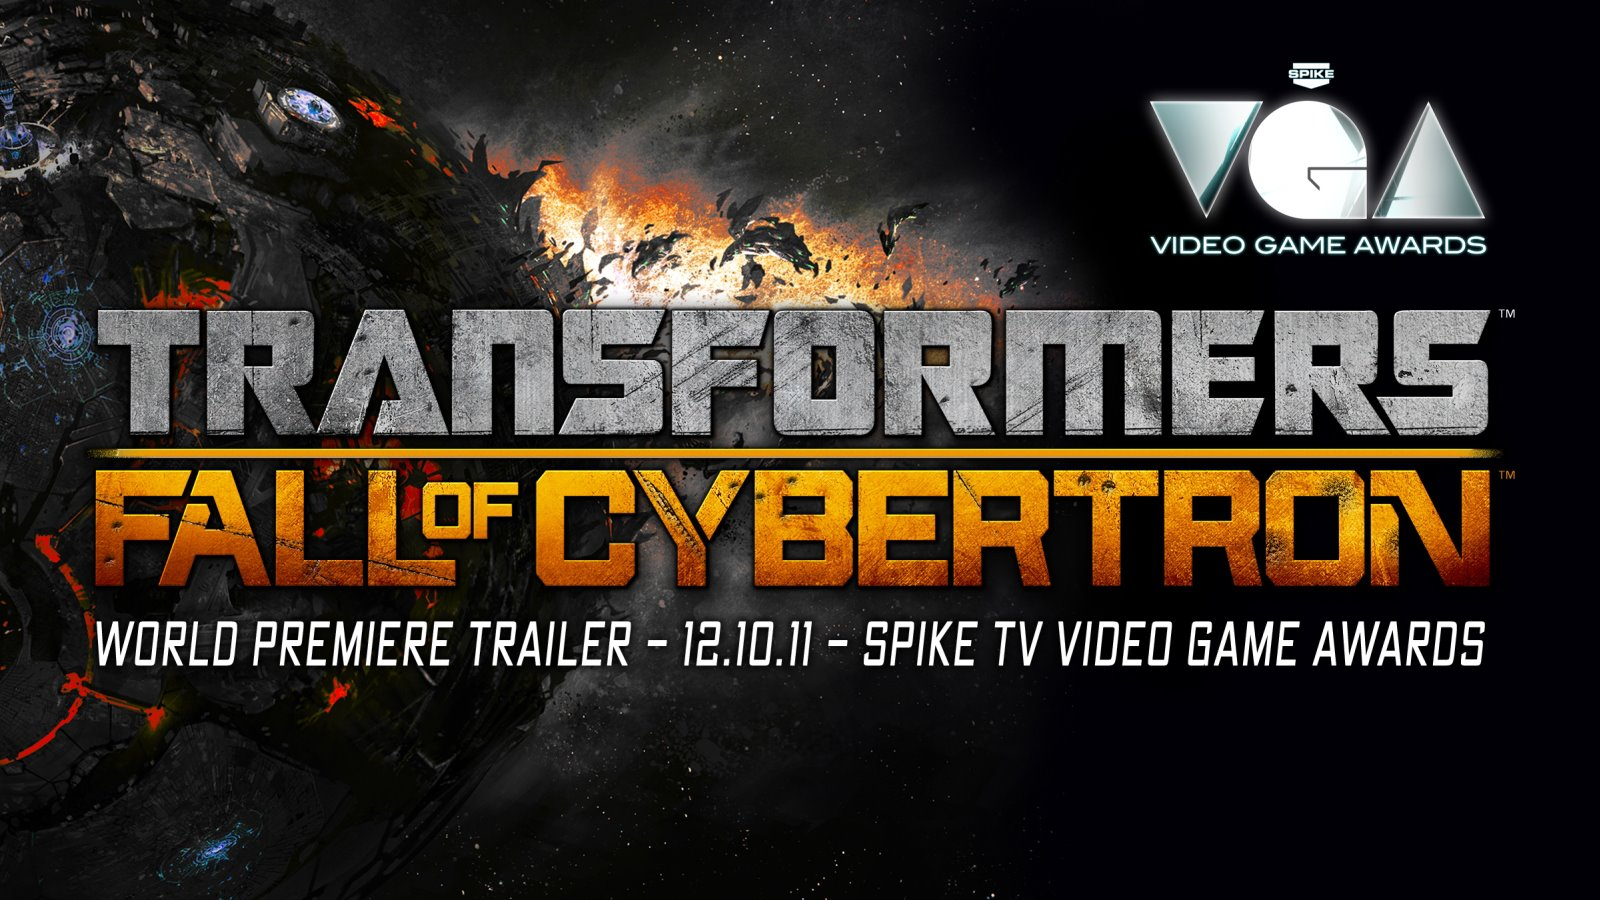 Transformers-Fall-of-Cybertron-Cinematic-Reveal-Trailer-Spike-TV-Video-Game-Awards-2011